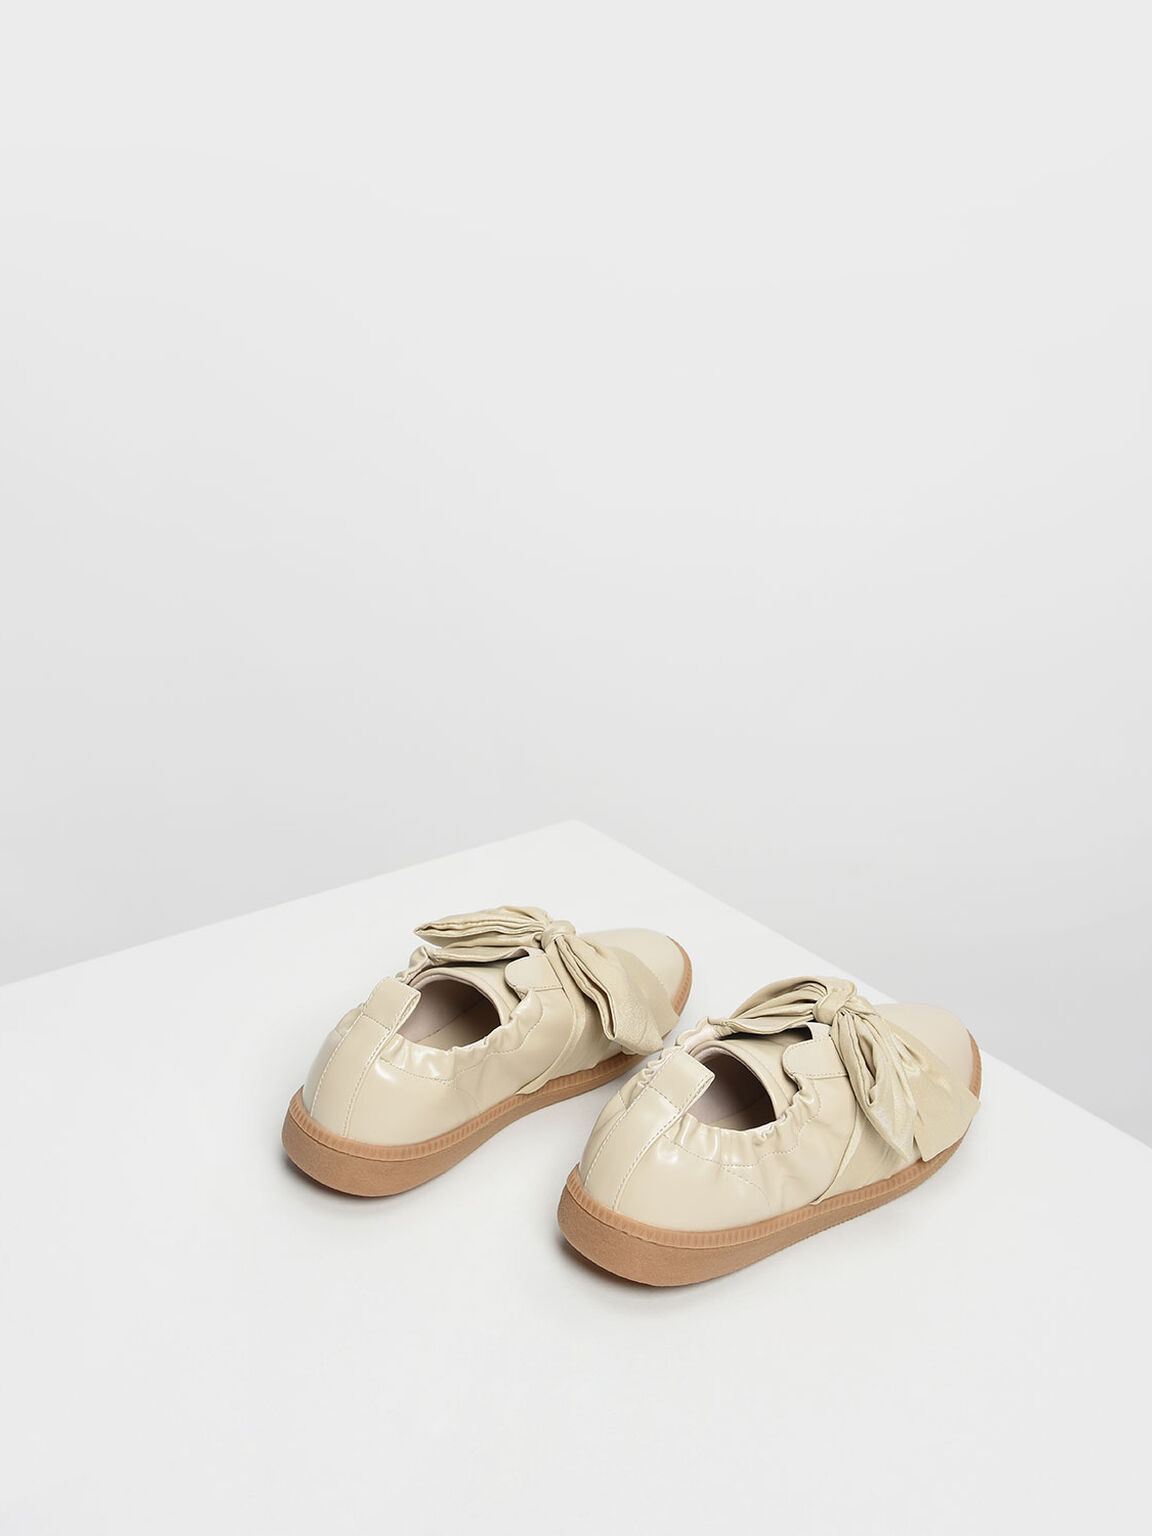 Knotted Bow Sneakers, Cream, hi-res